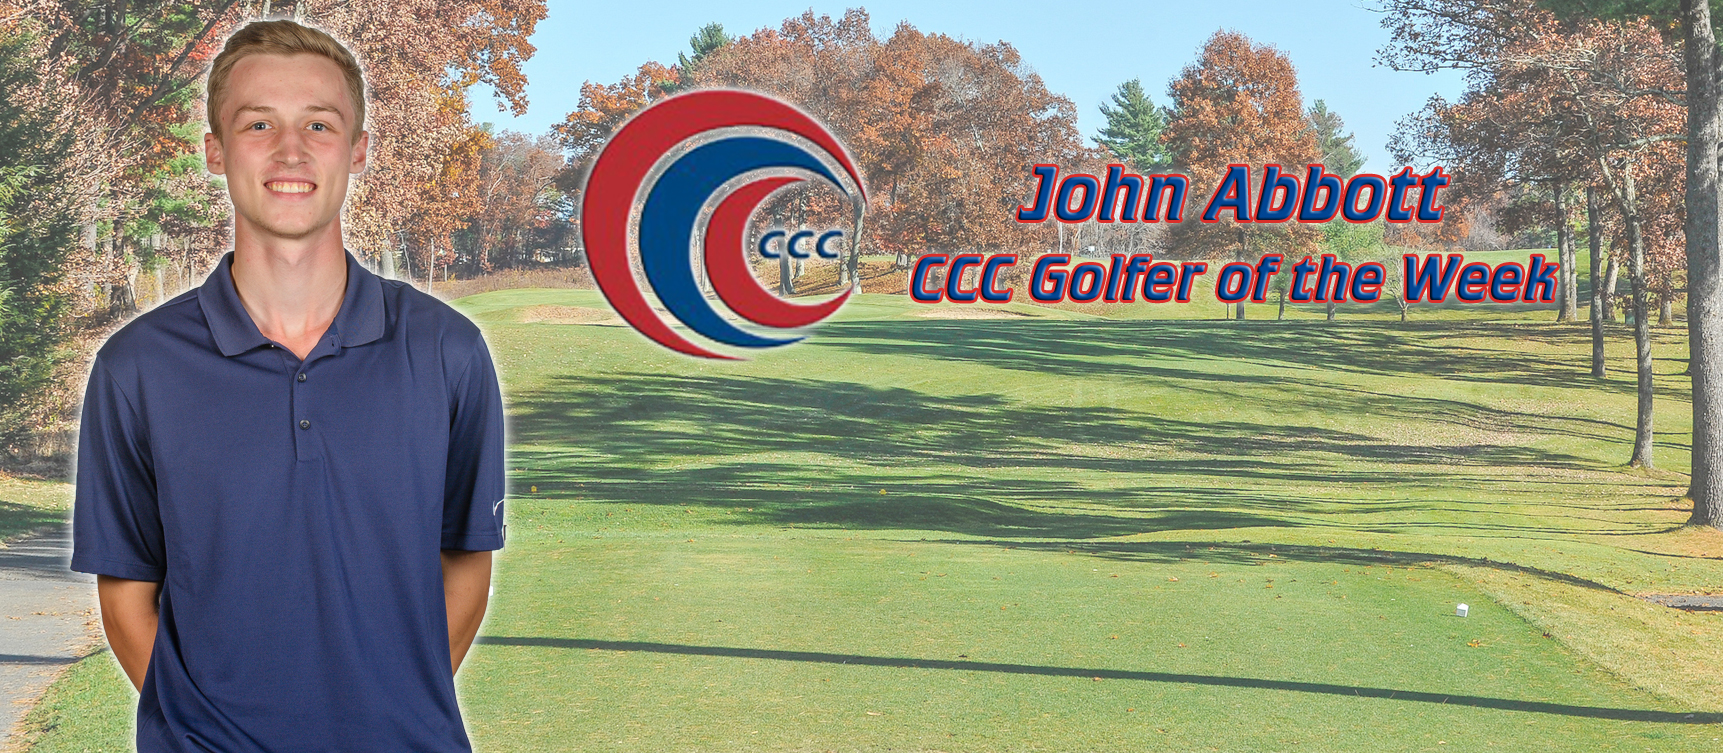 John Abbott Recognized as CCC Golfer of the Week